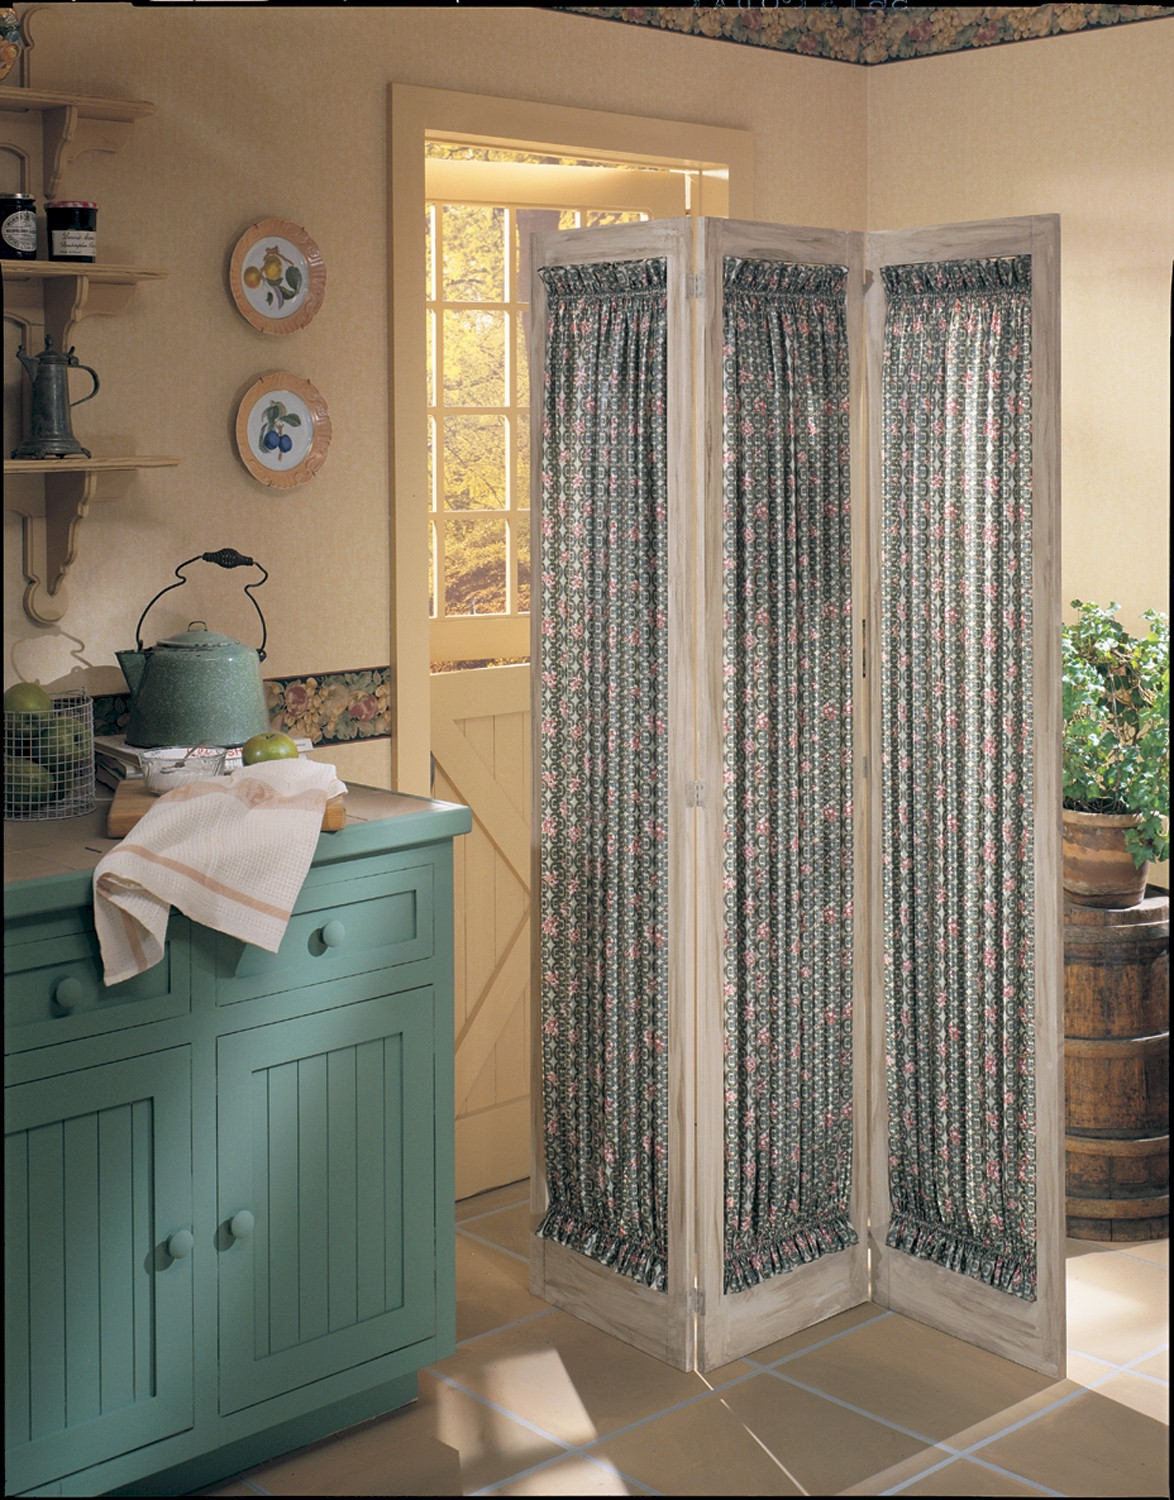 Decorative Room Dividers Privacy Dividers For Home Or Office